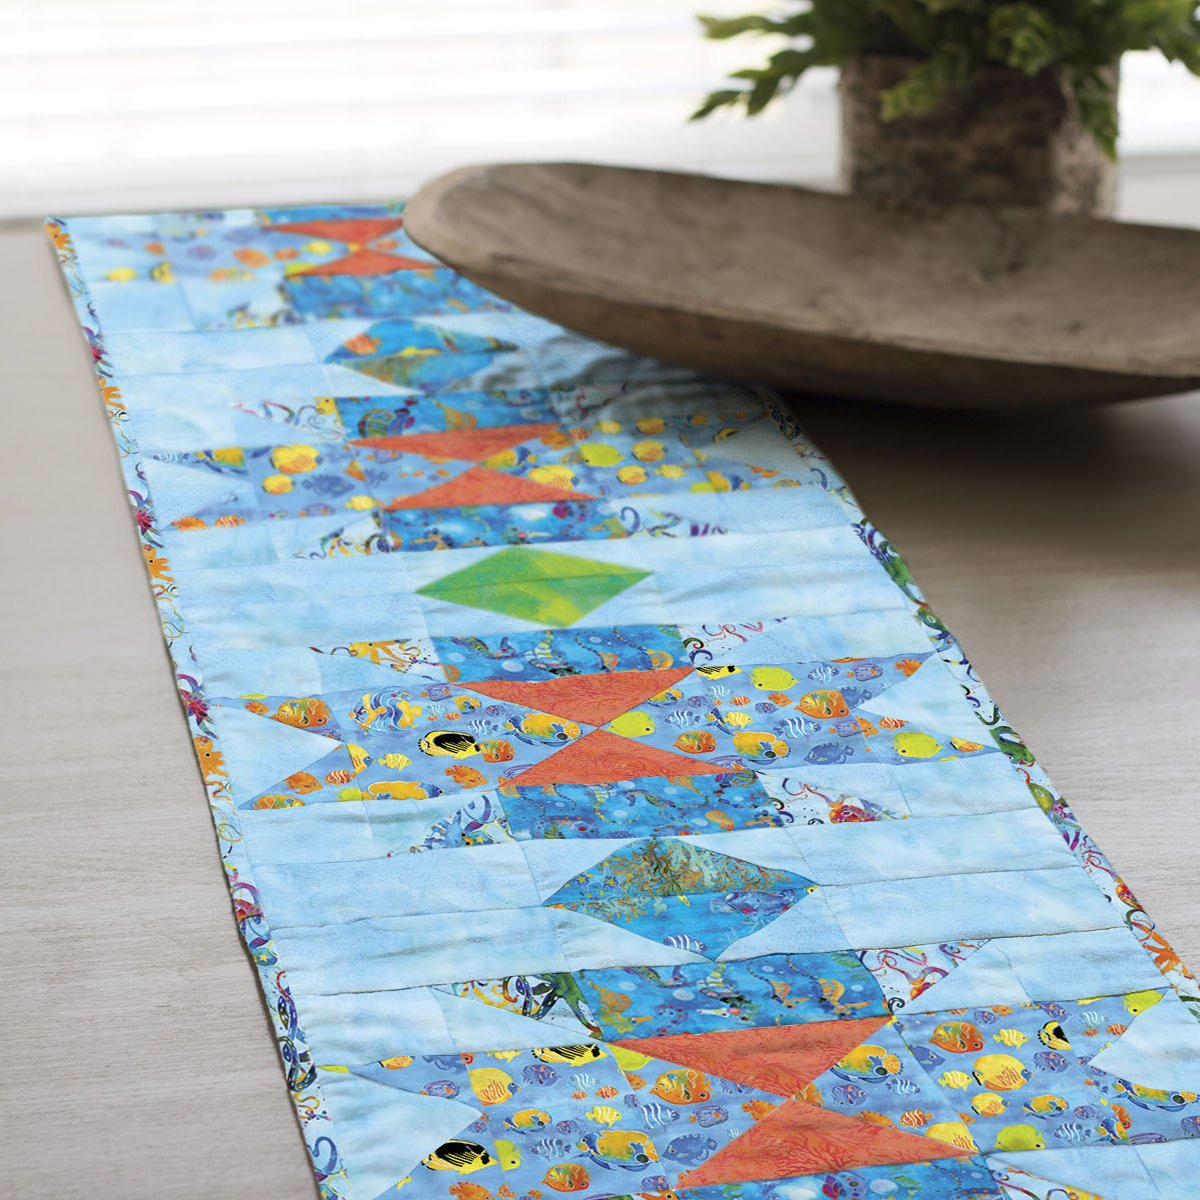 3 Wishes Fabric<br>Under the Sea Table Runner